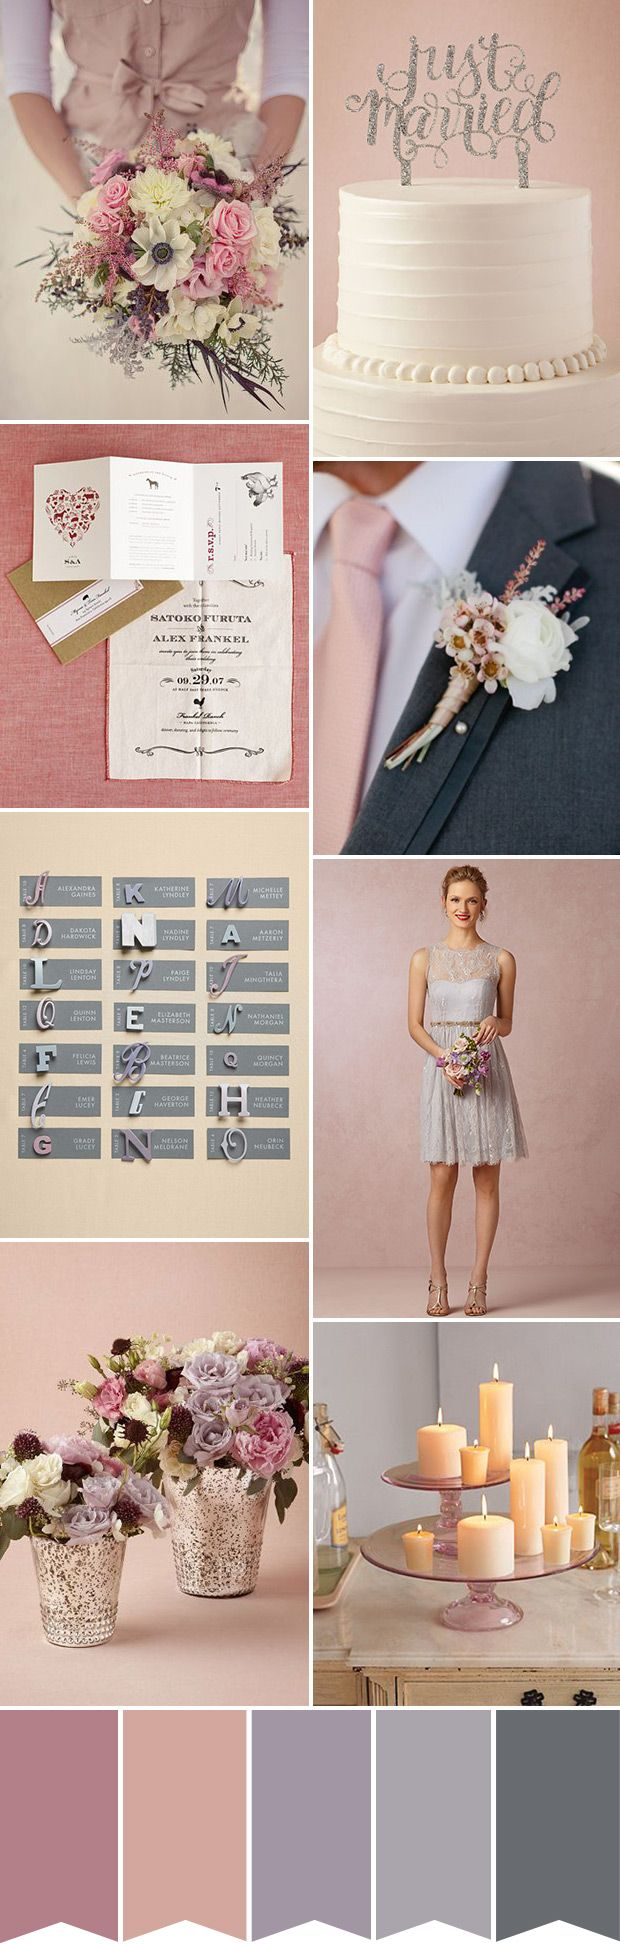 A wintery pink wedding colour palette   www.onefabday.com